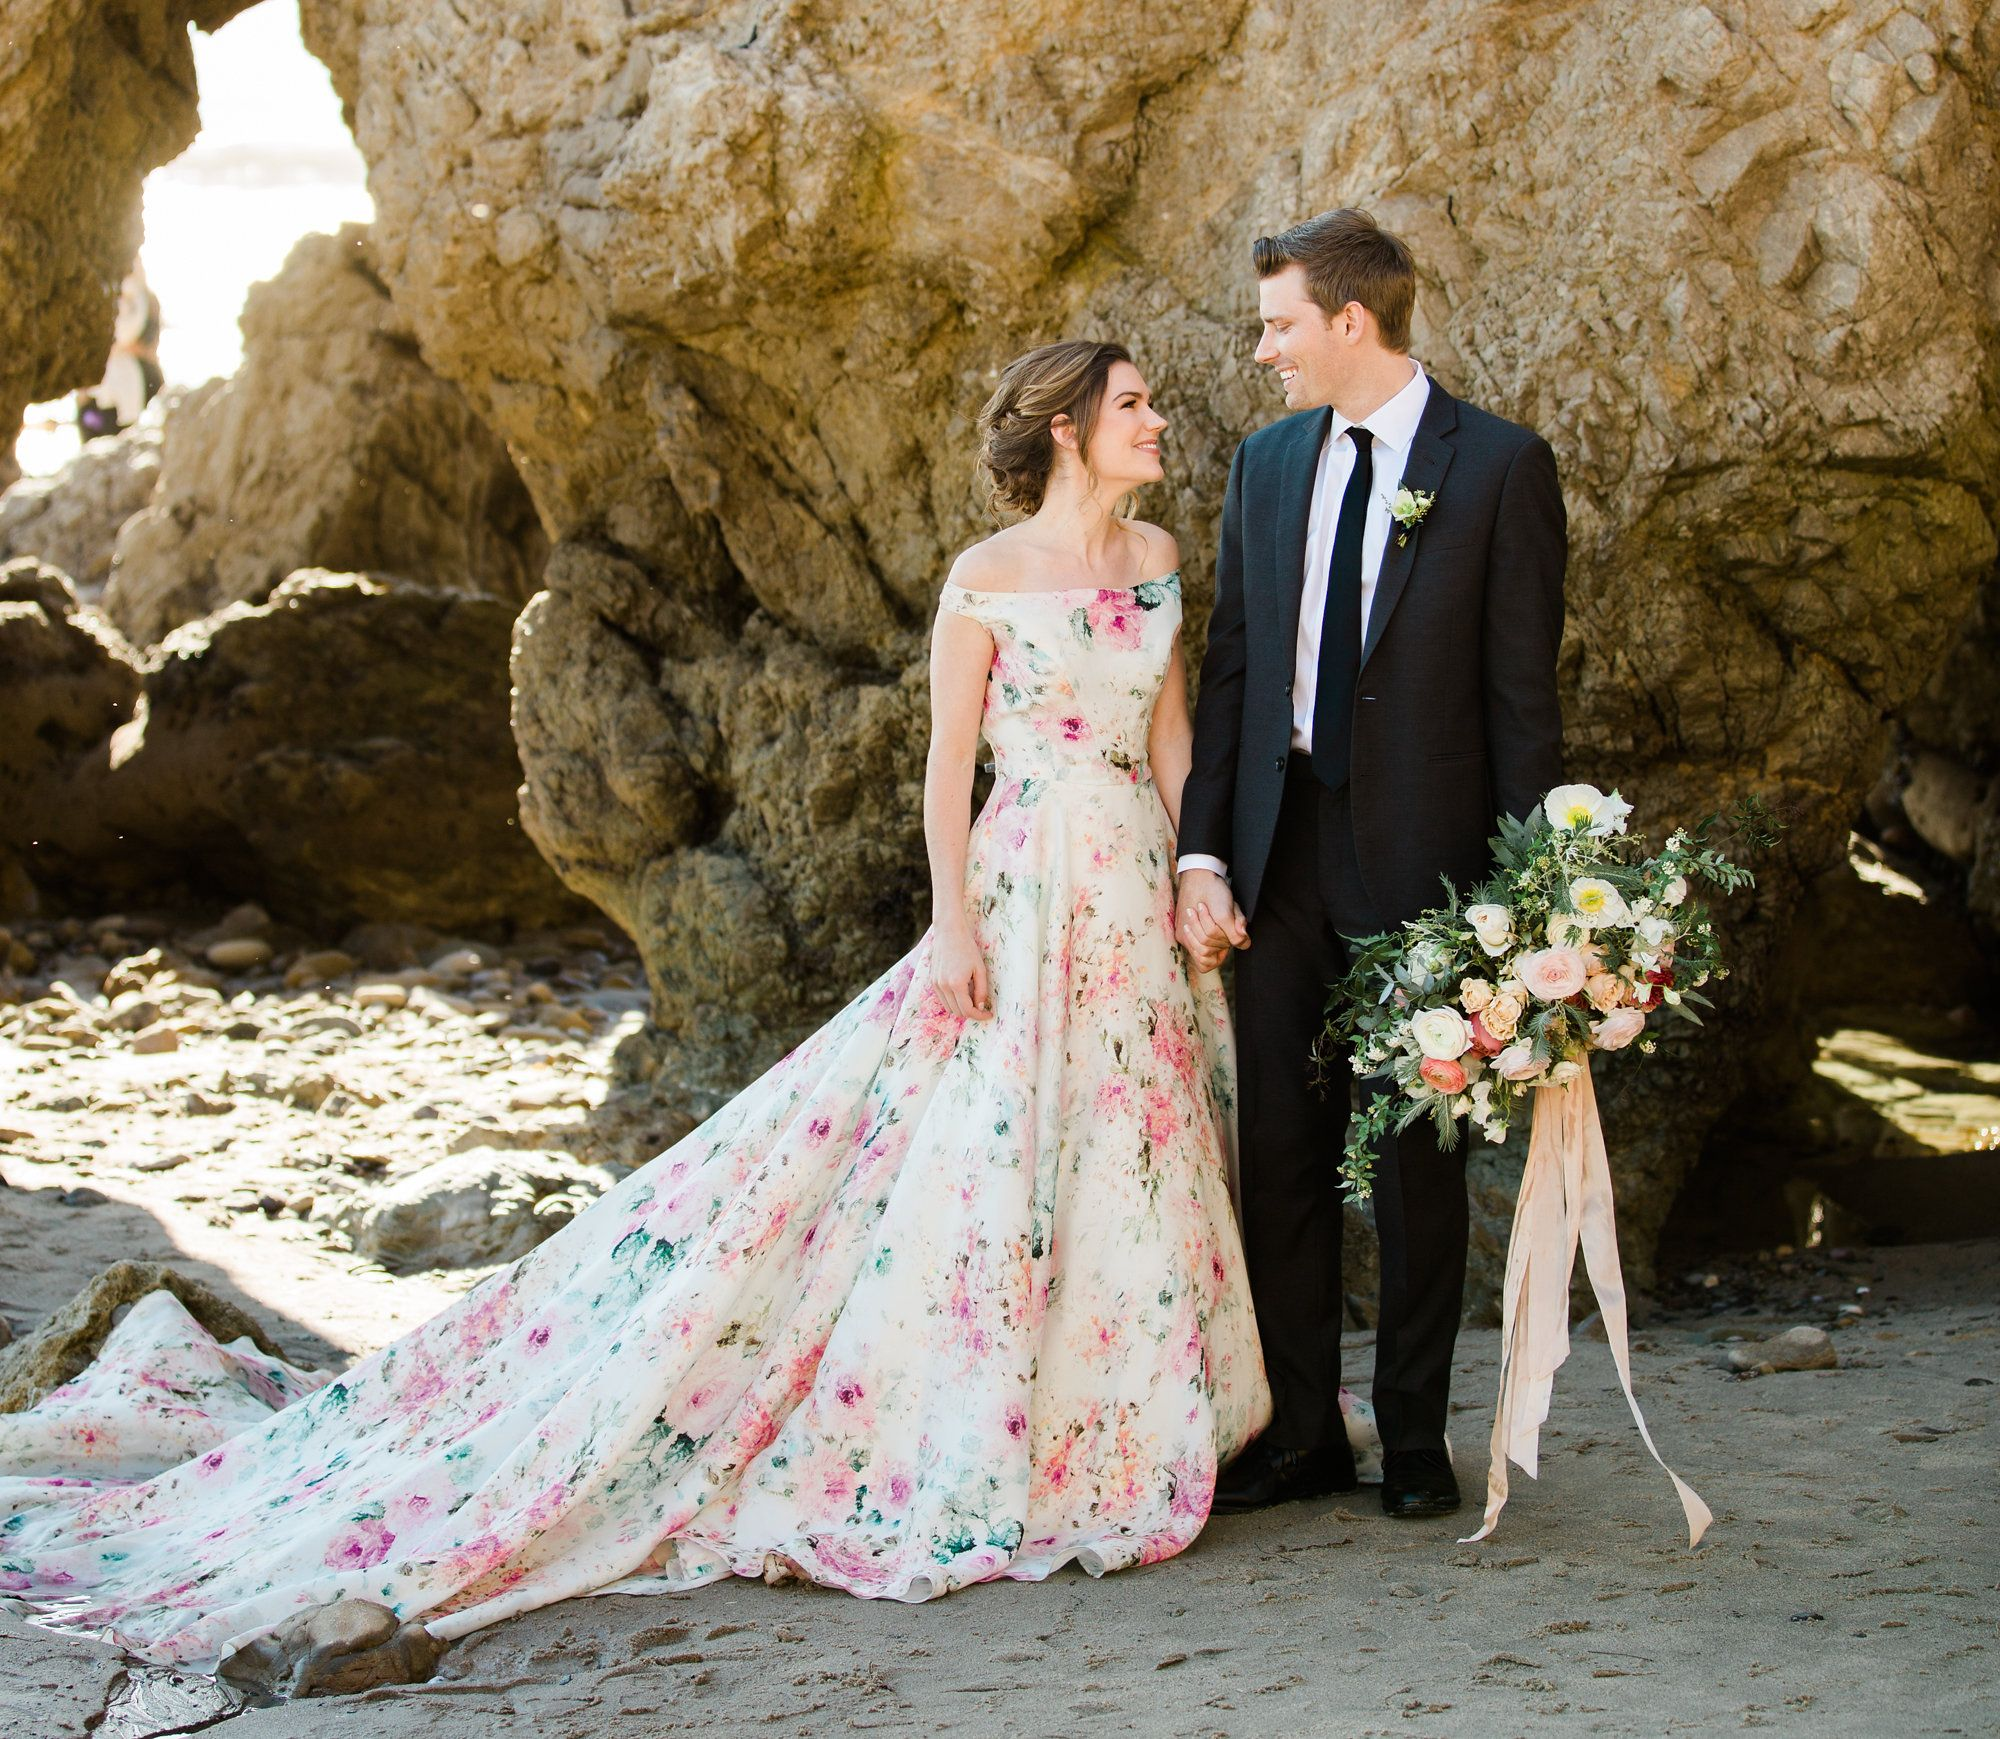 Floral print wedding dresses  Itus All About Love and Support At This Beach Wedding Shoot